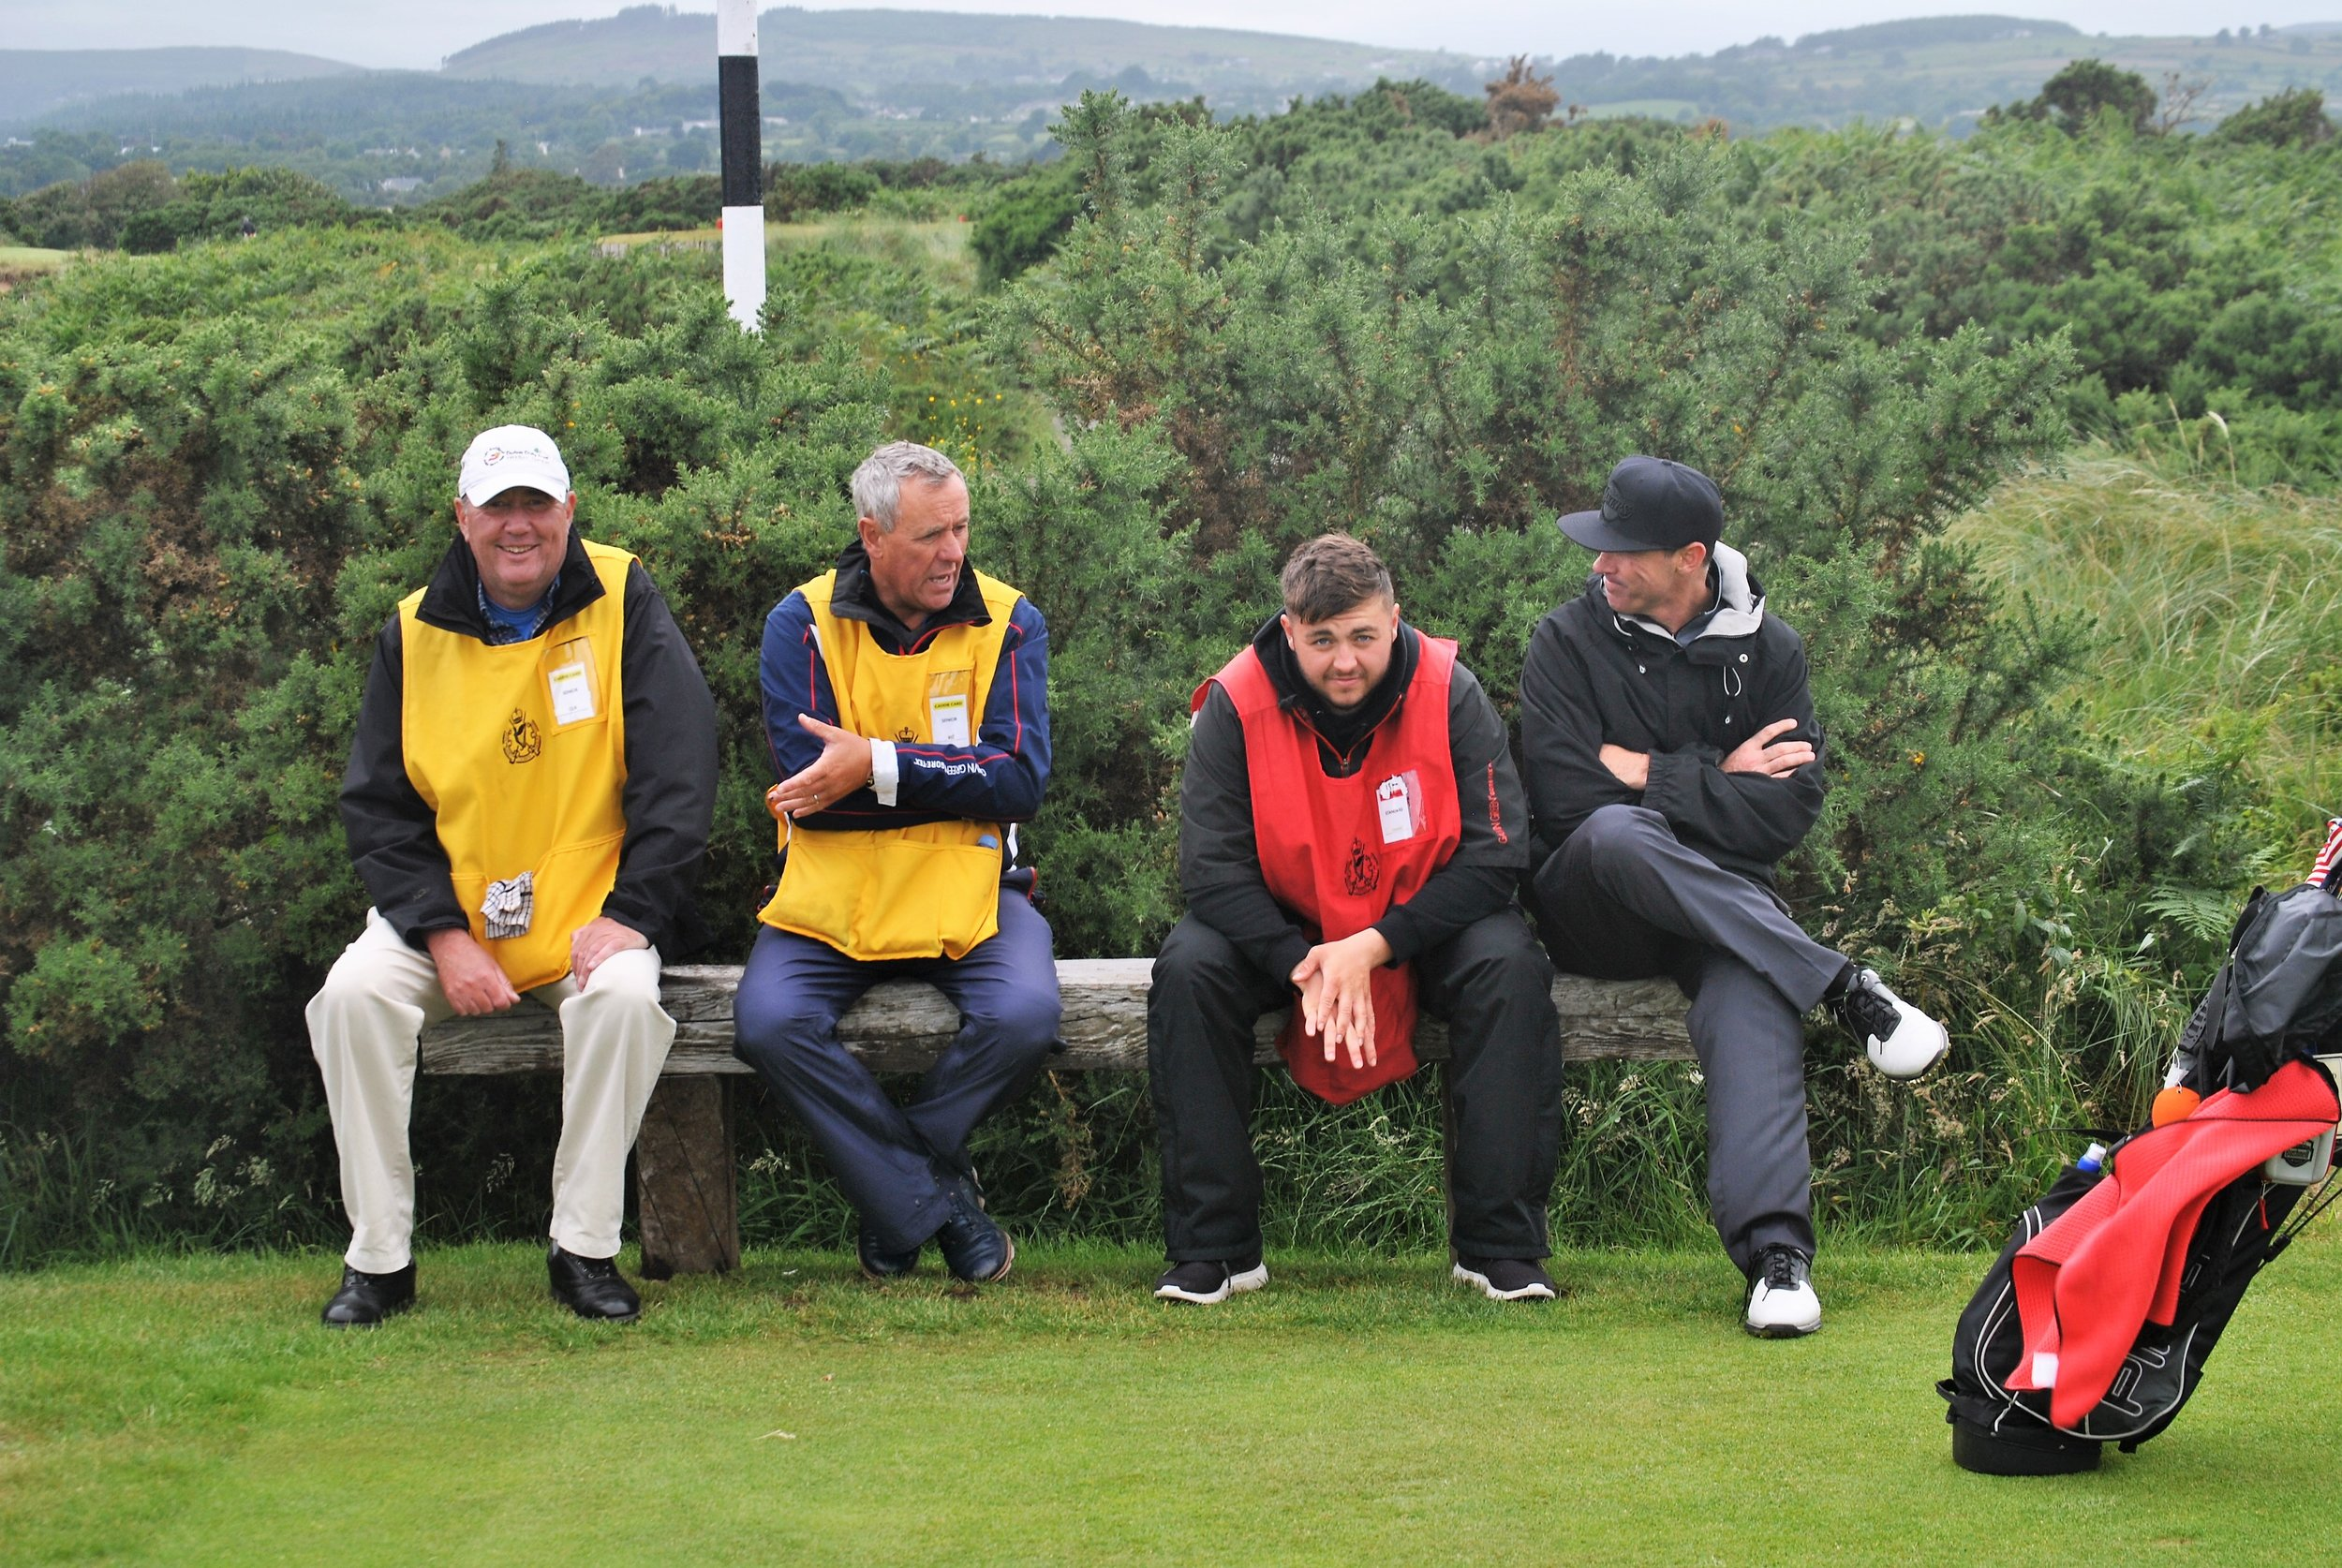 The caddies and Chad take a break while we wait to tee off on the Par 3 14th hole